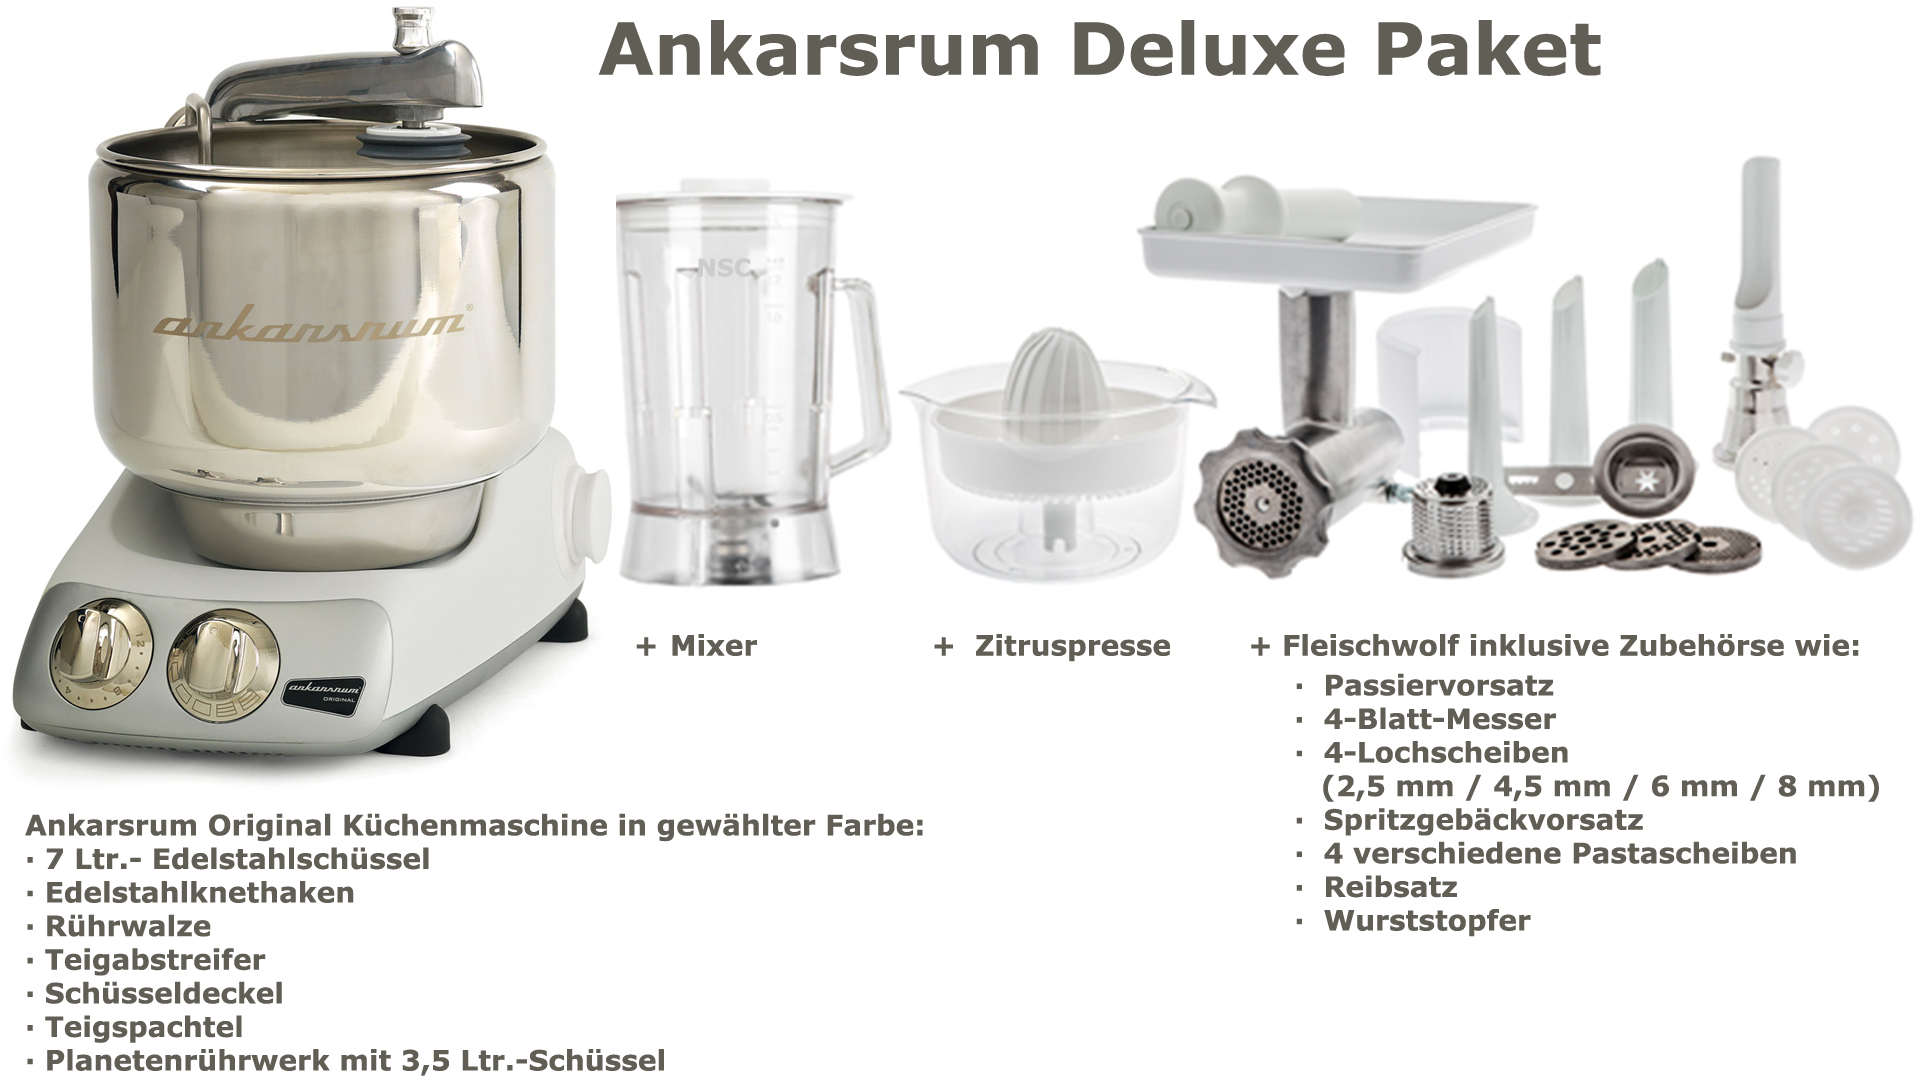 Ankarsrum Assistent Deluxe Package Mineral White